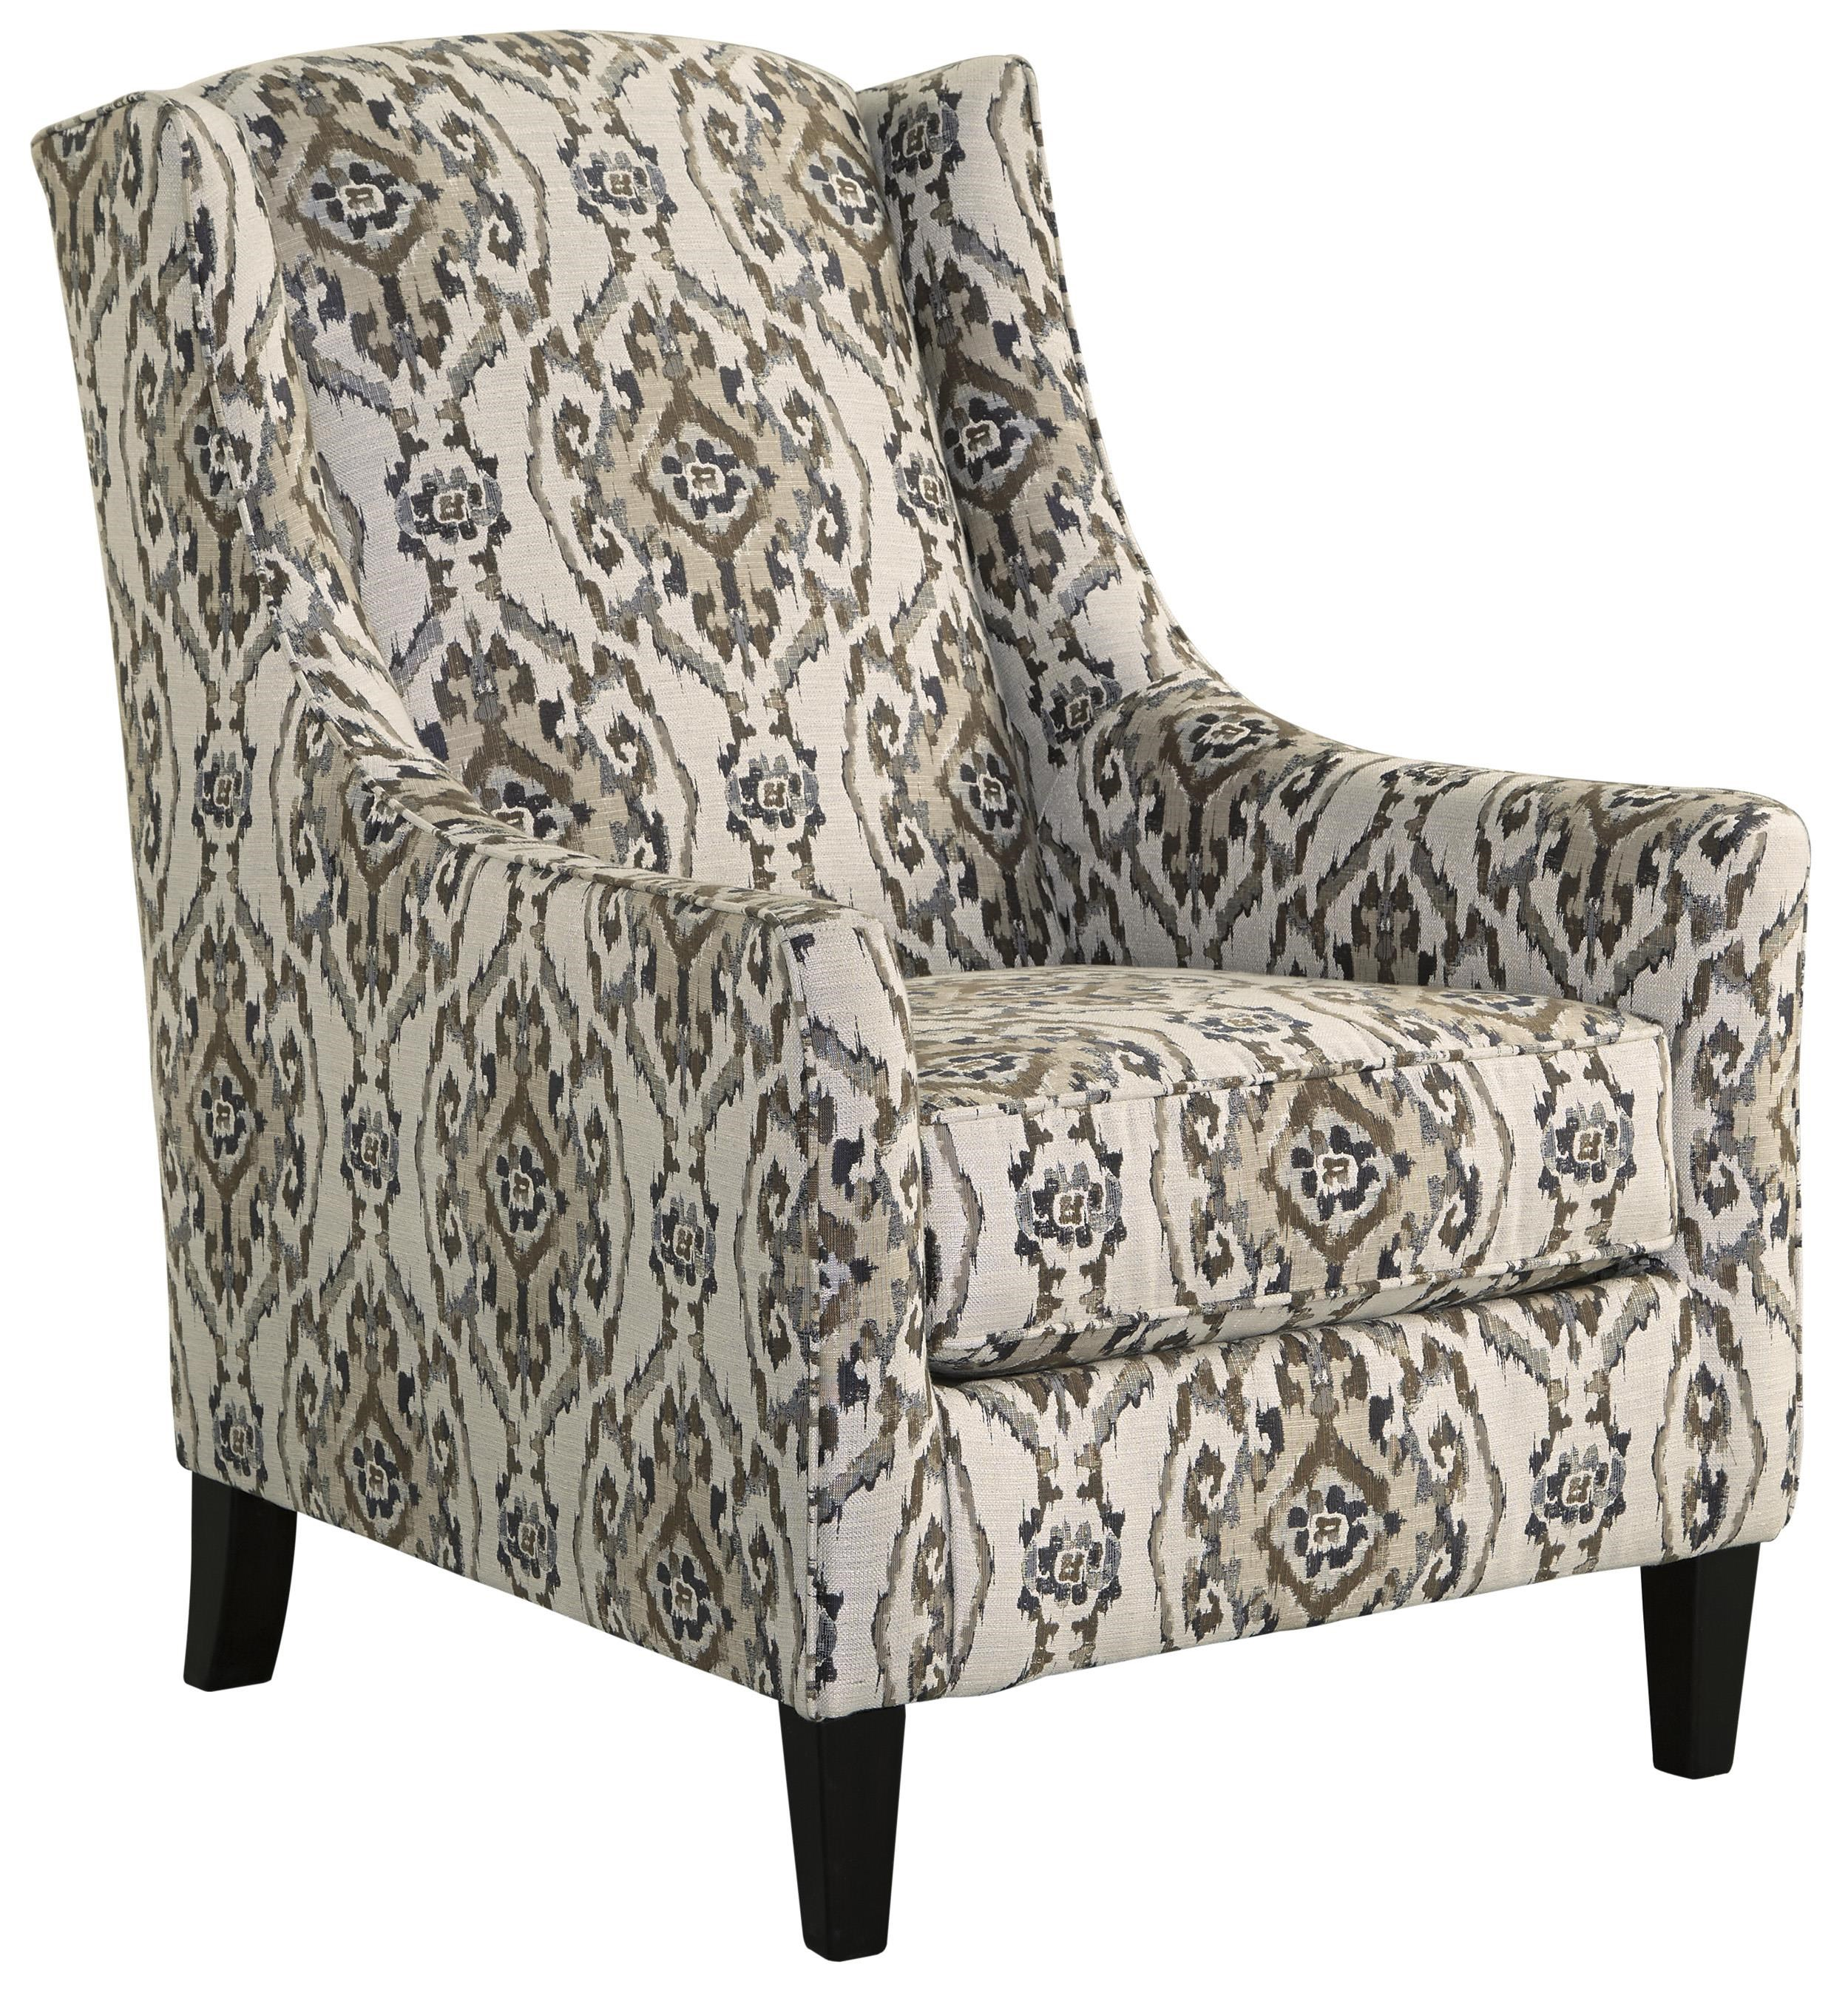 Benchcraft Jonette Transitional Wing Back Accent Chair